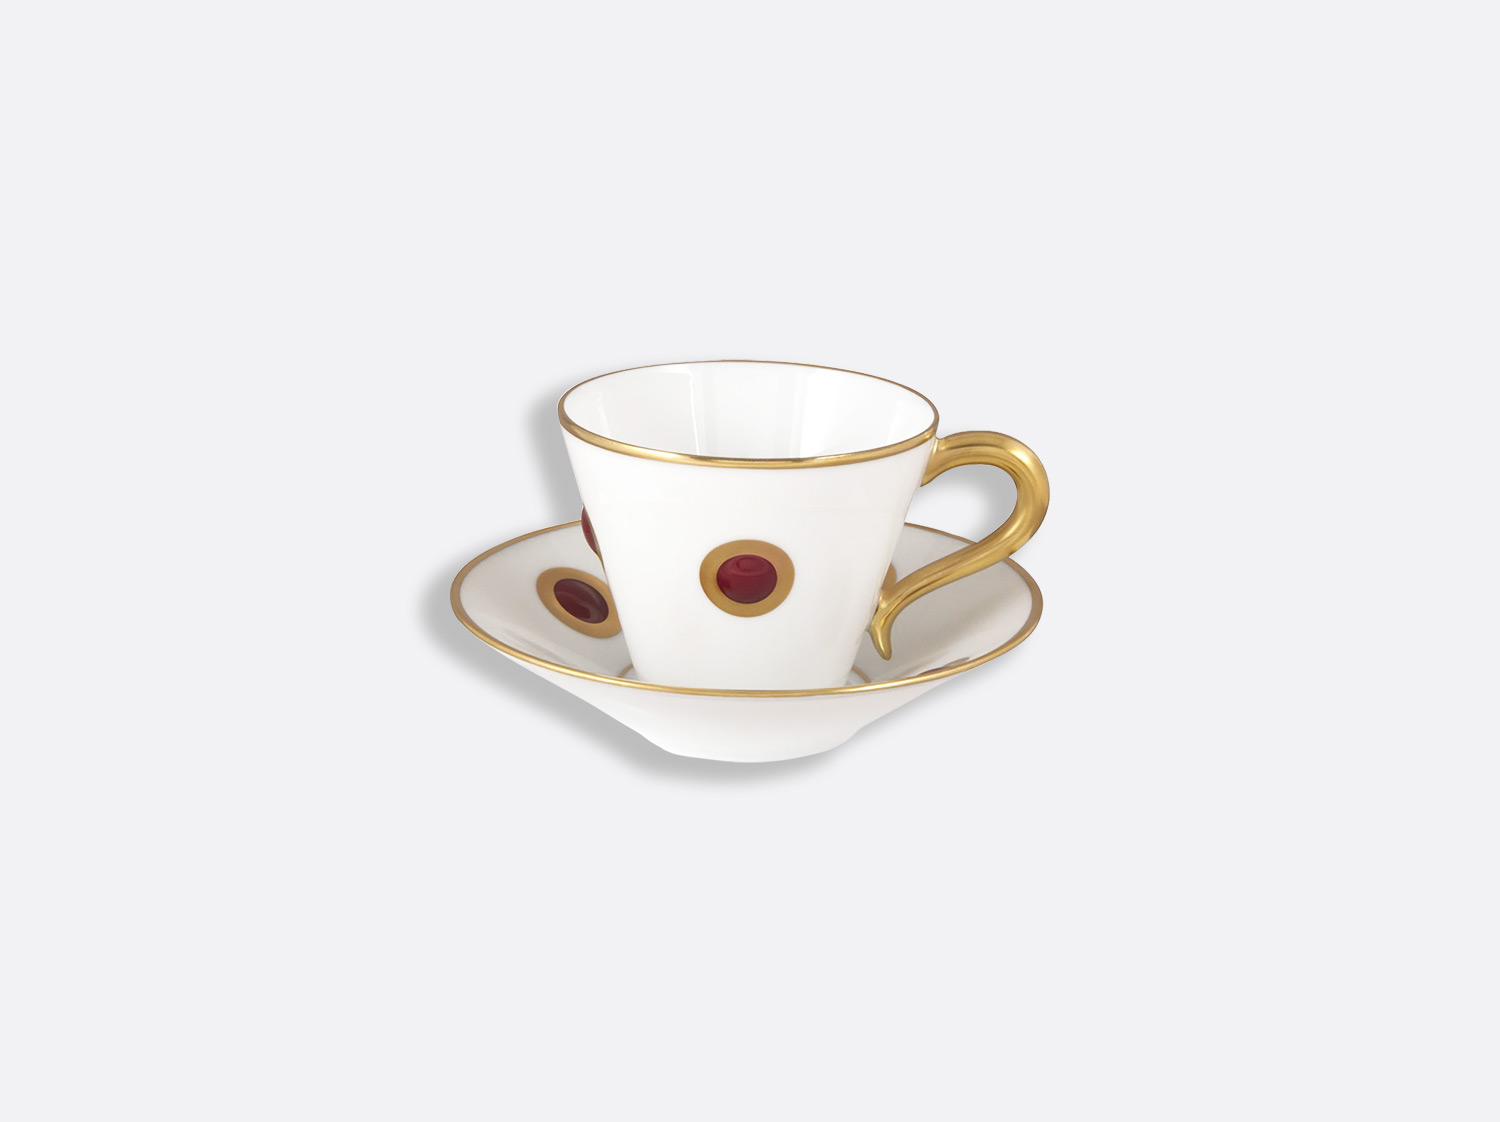 Tasse et soucoupe café 13 cl en porcelaine de la collection Ithaque garance Bernardaud